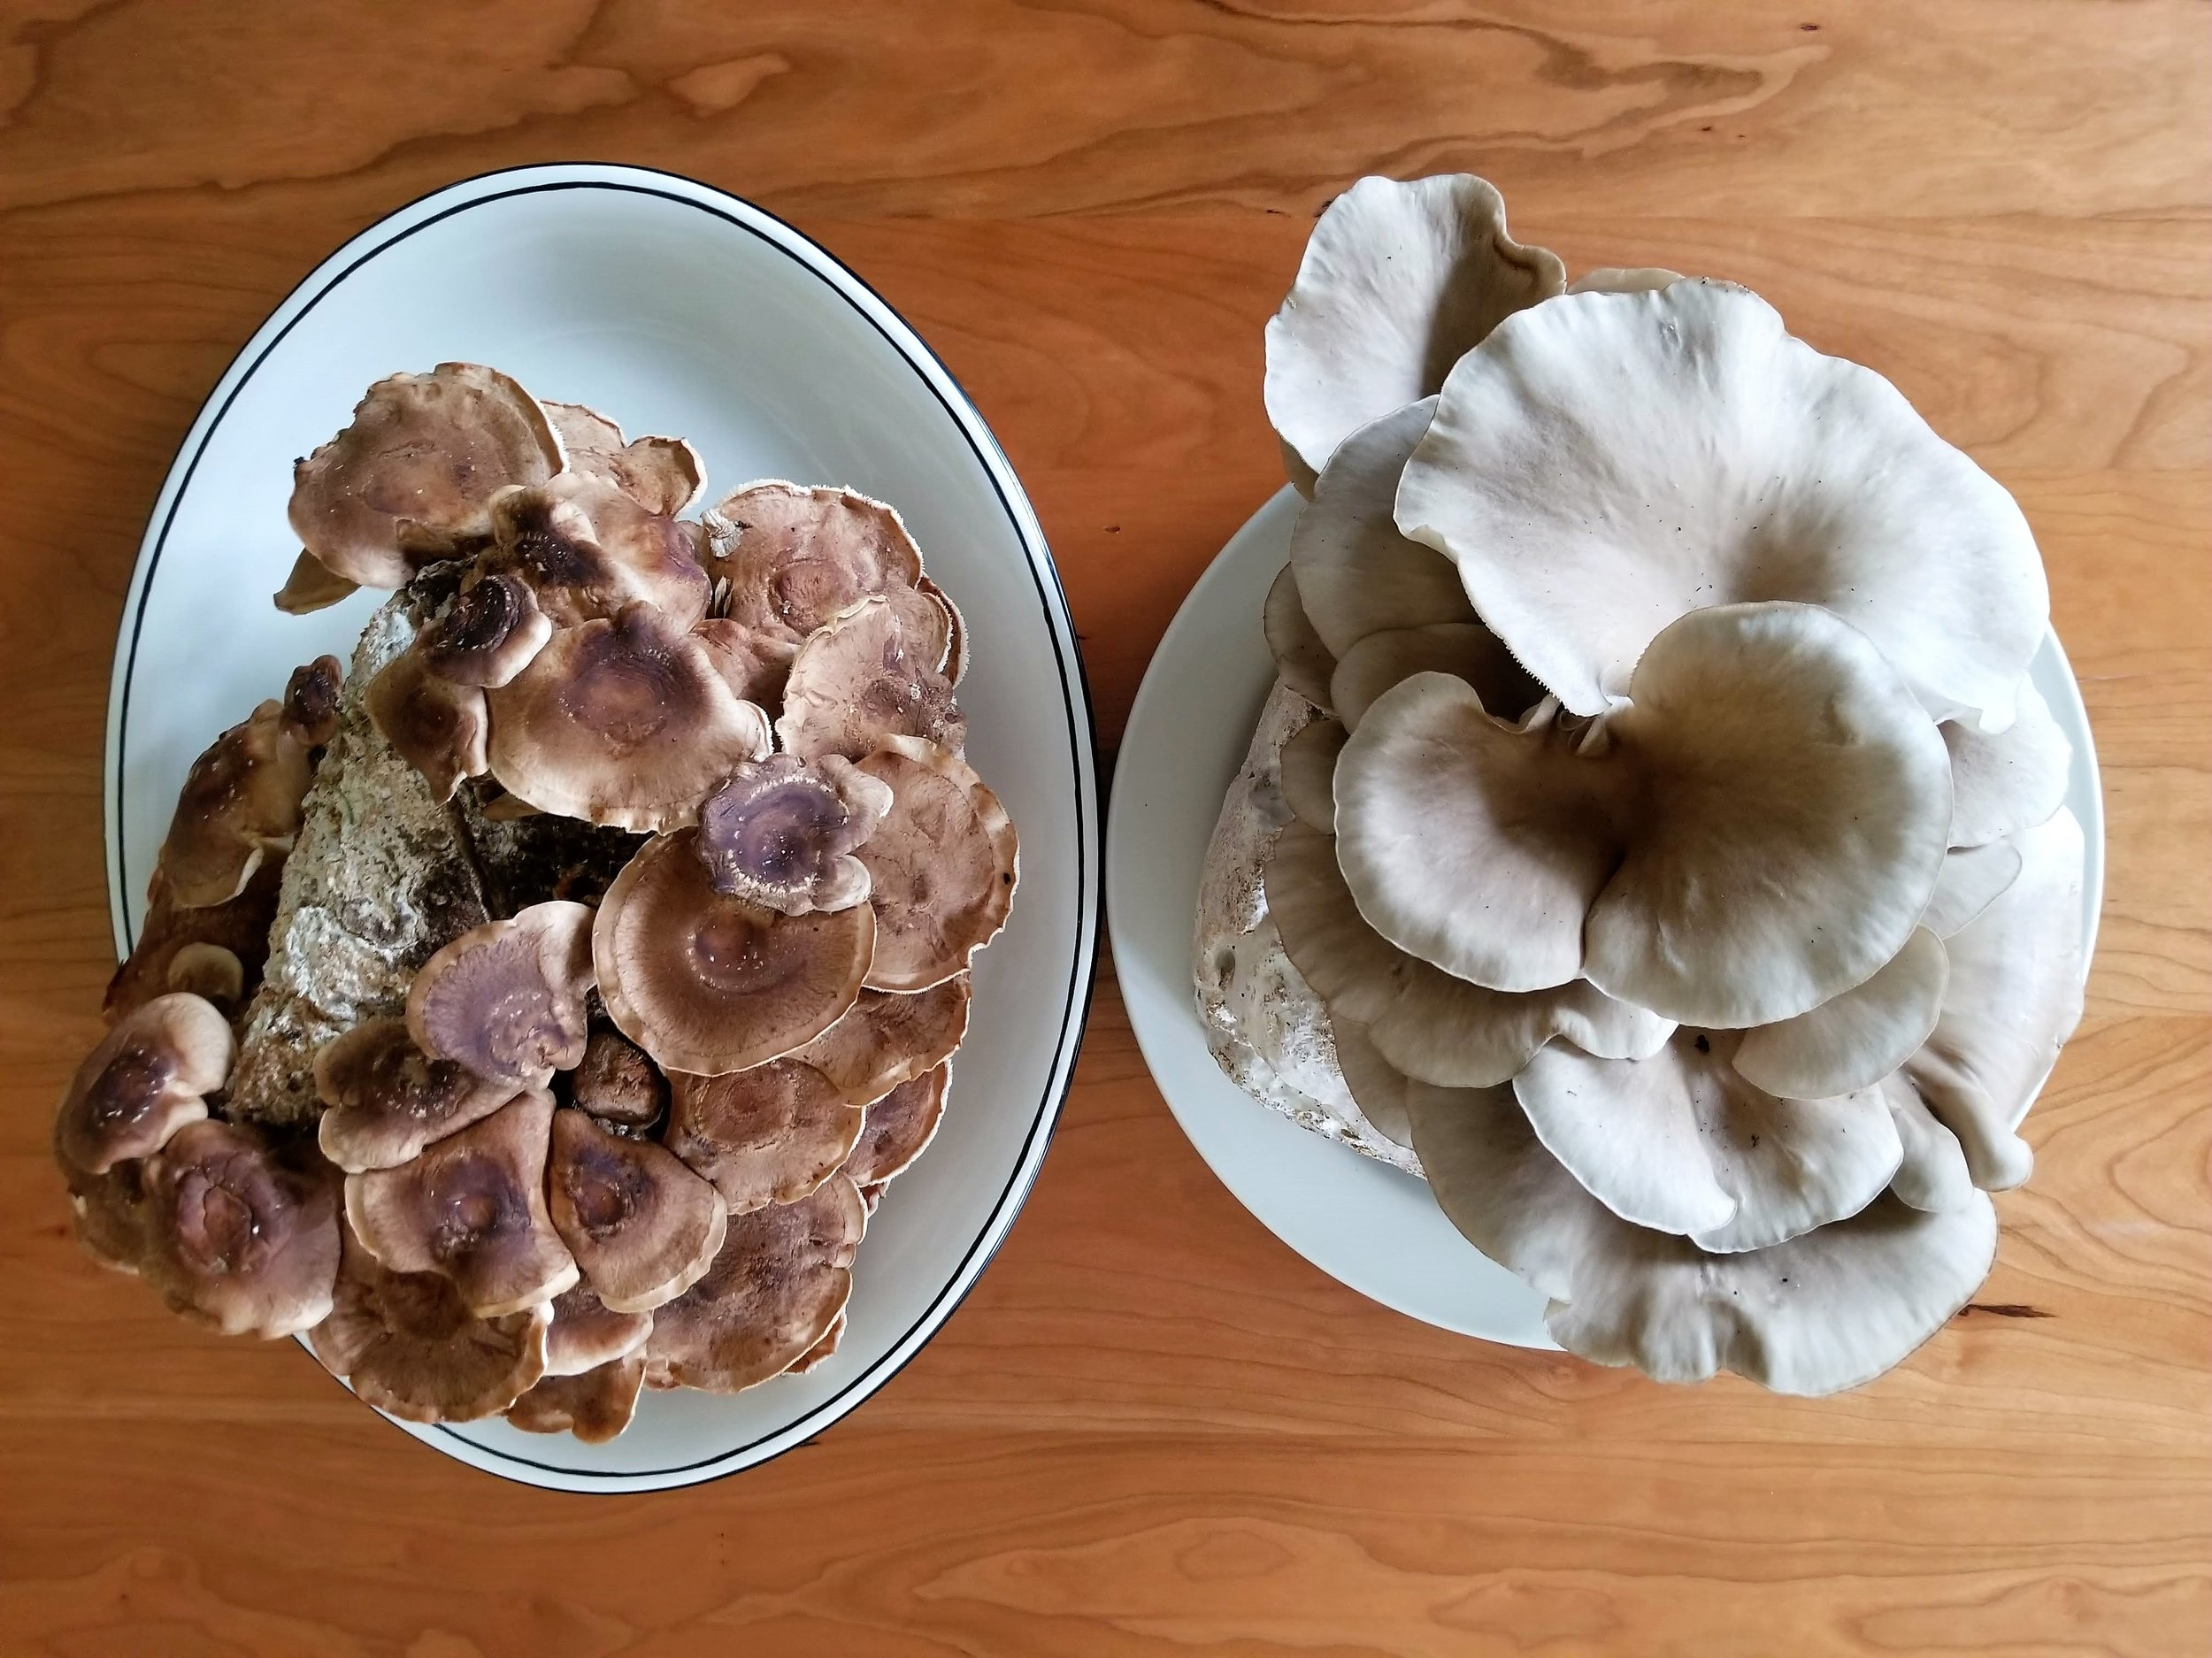 Our shiitake and oyster mushrooms from grow kits